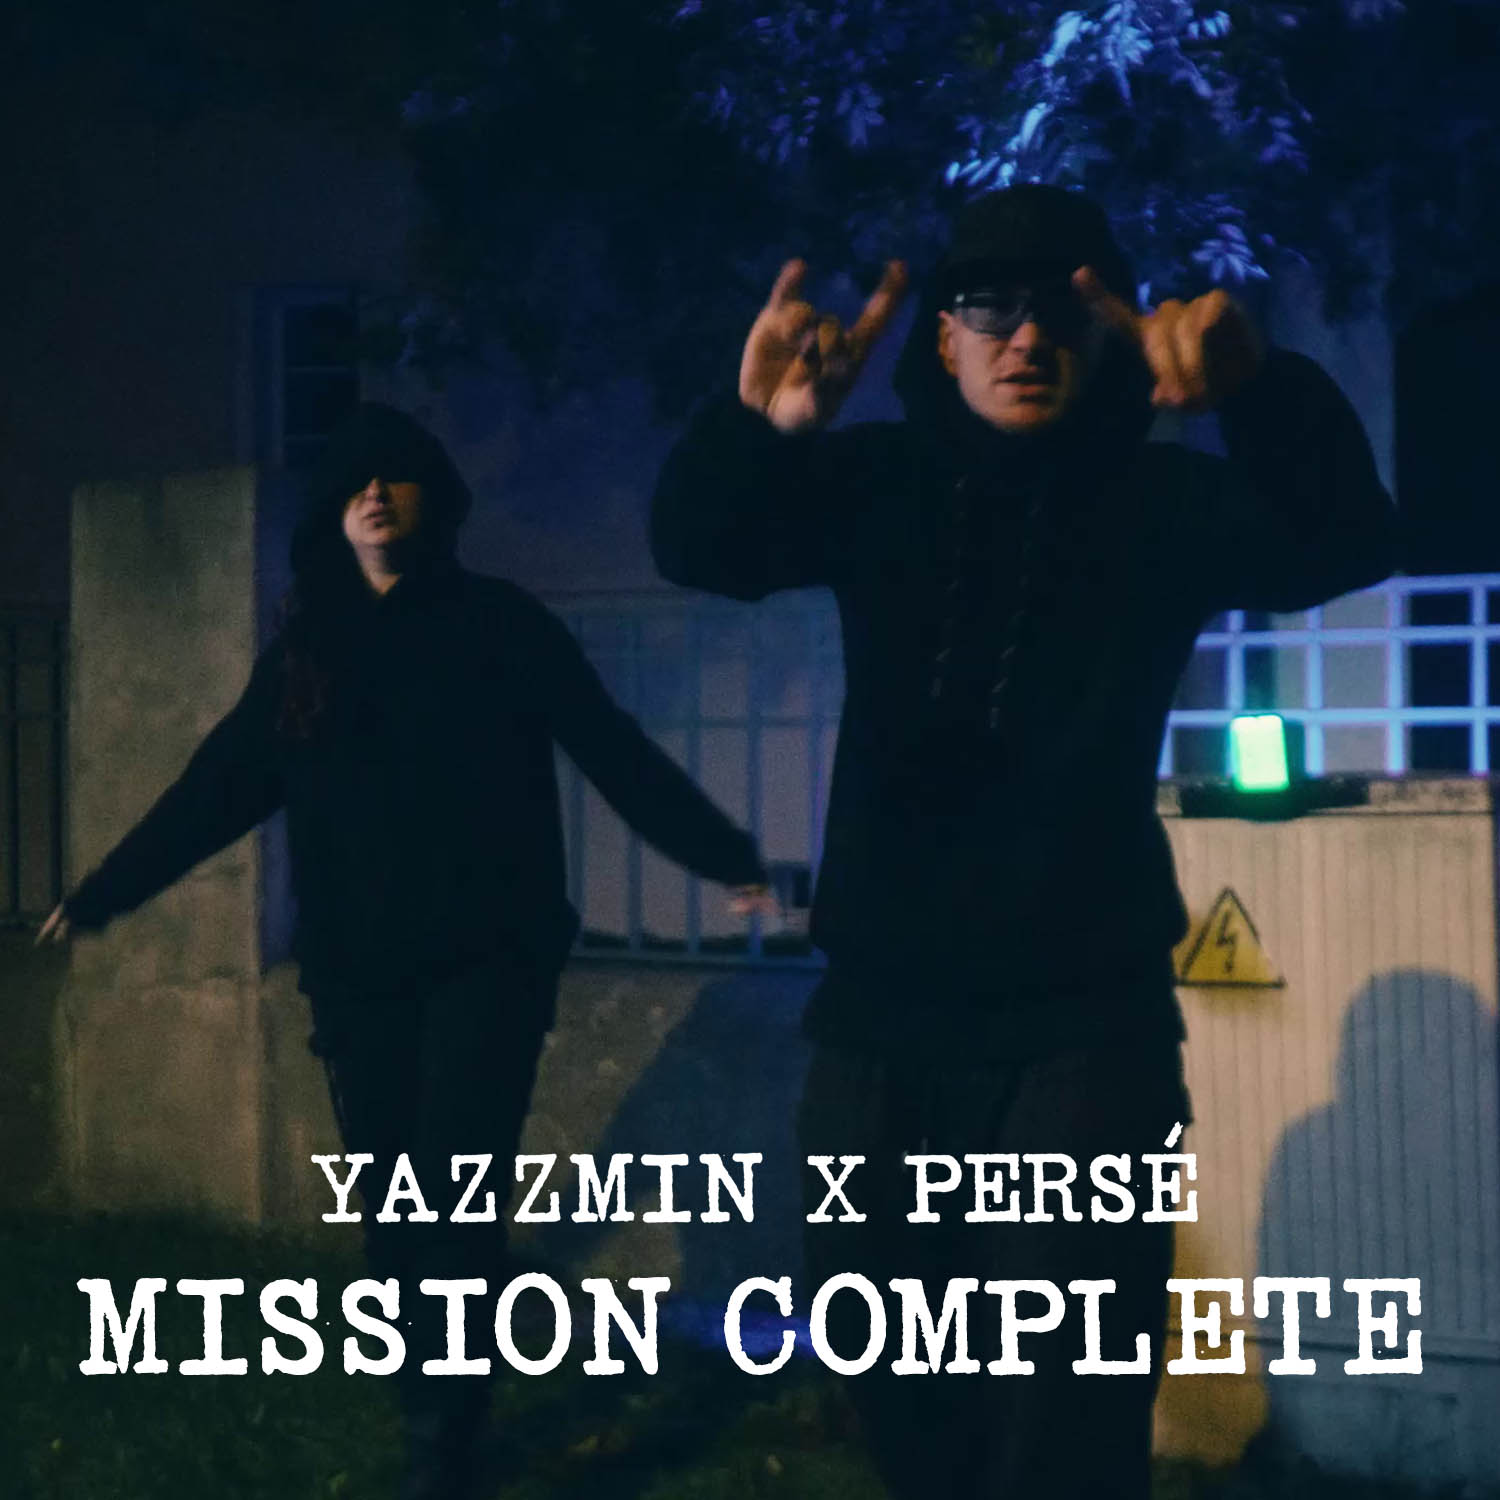 Upcoming: Persé & Yazzmin - Mission Complete [Video]